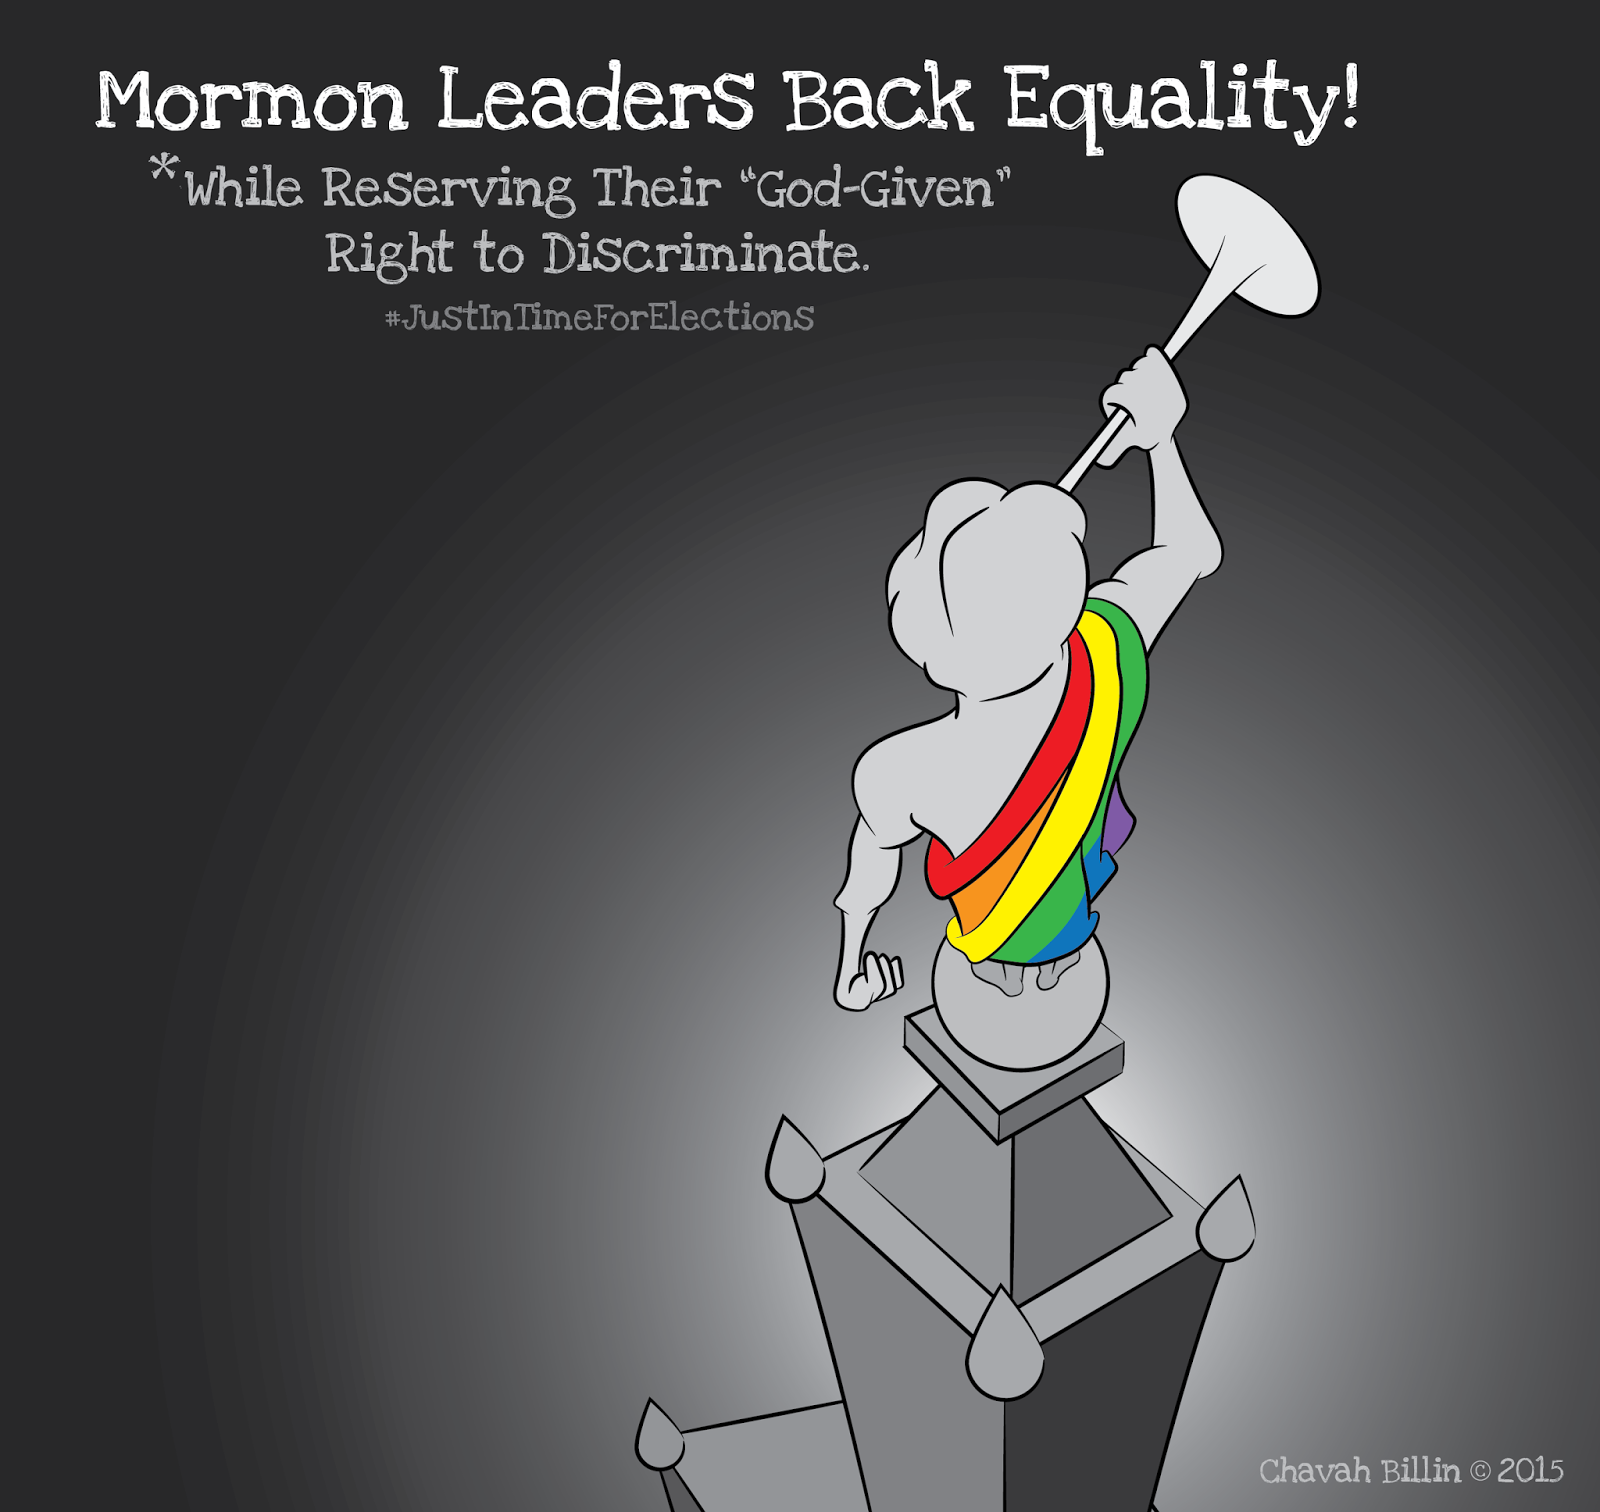 Mormon Leaders Back Equality - Still Discriminate